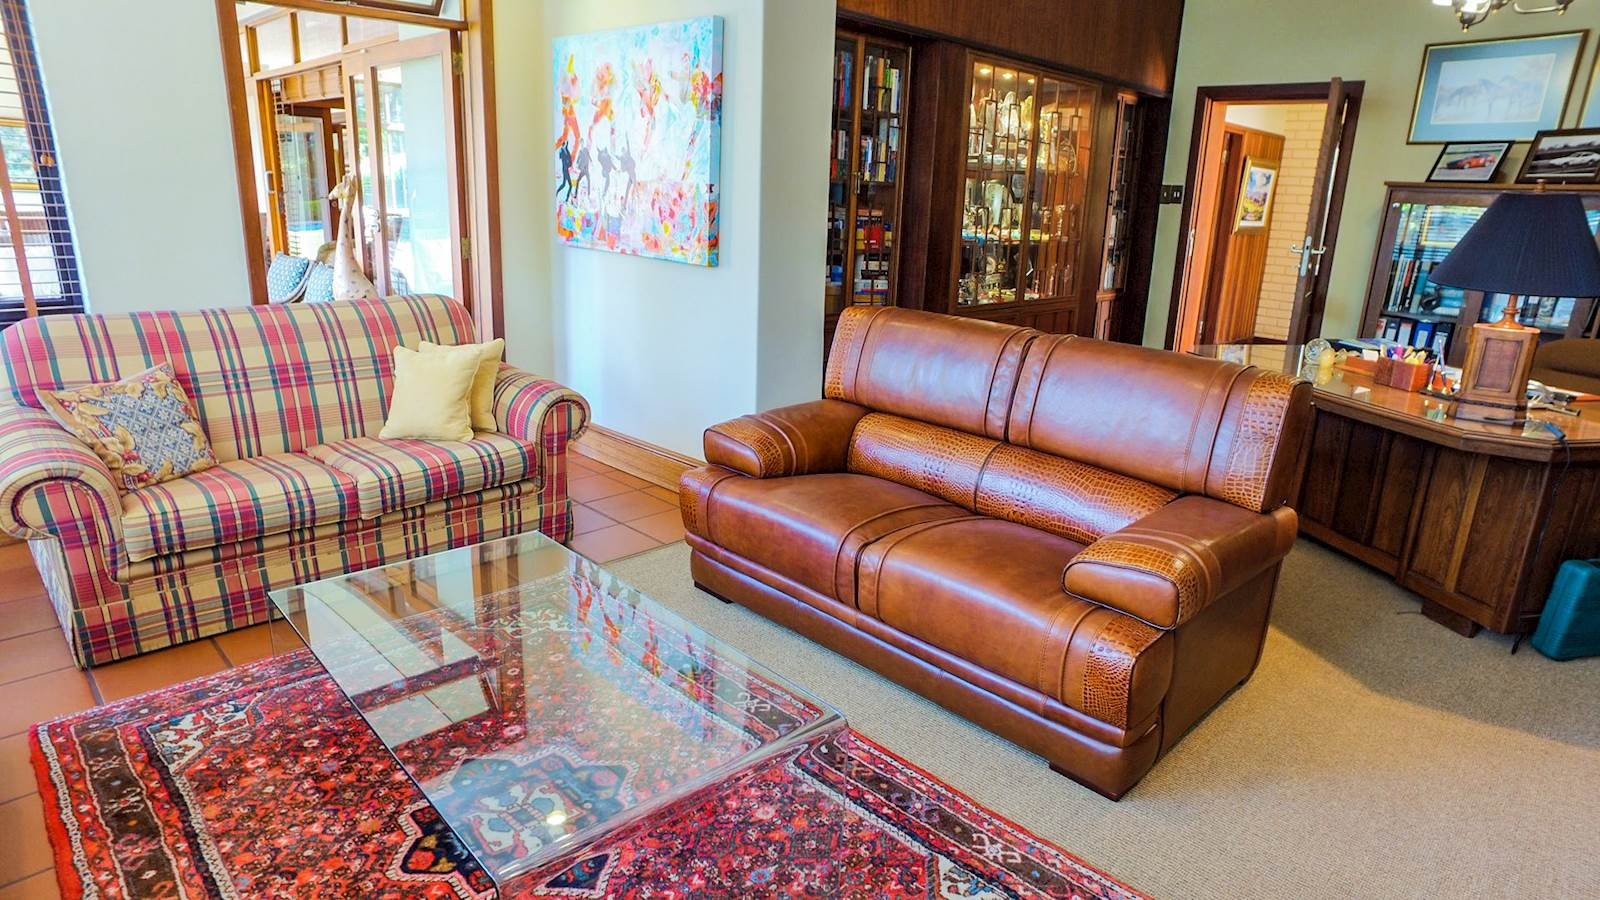 4 Bedroom House for sale in Waterkloof Ridge ENT0005736 : photo#3